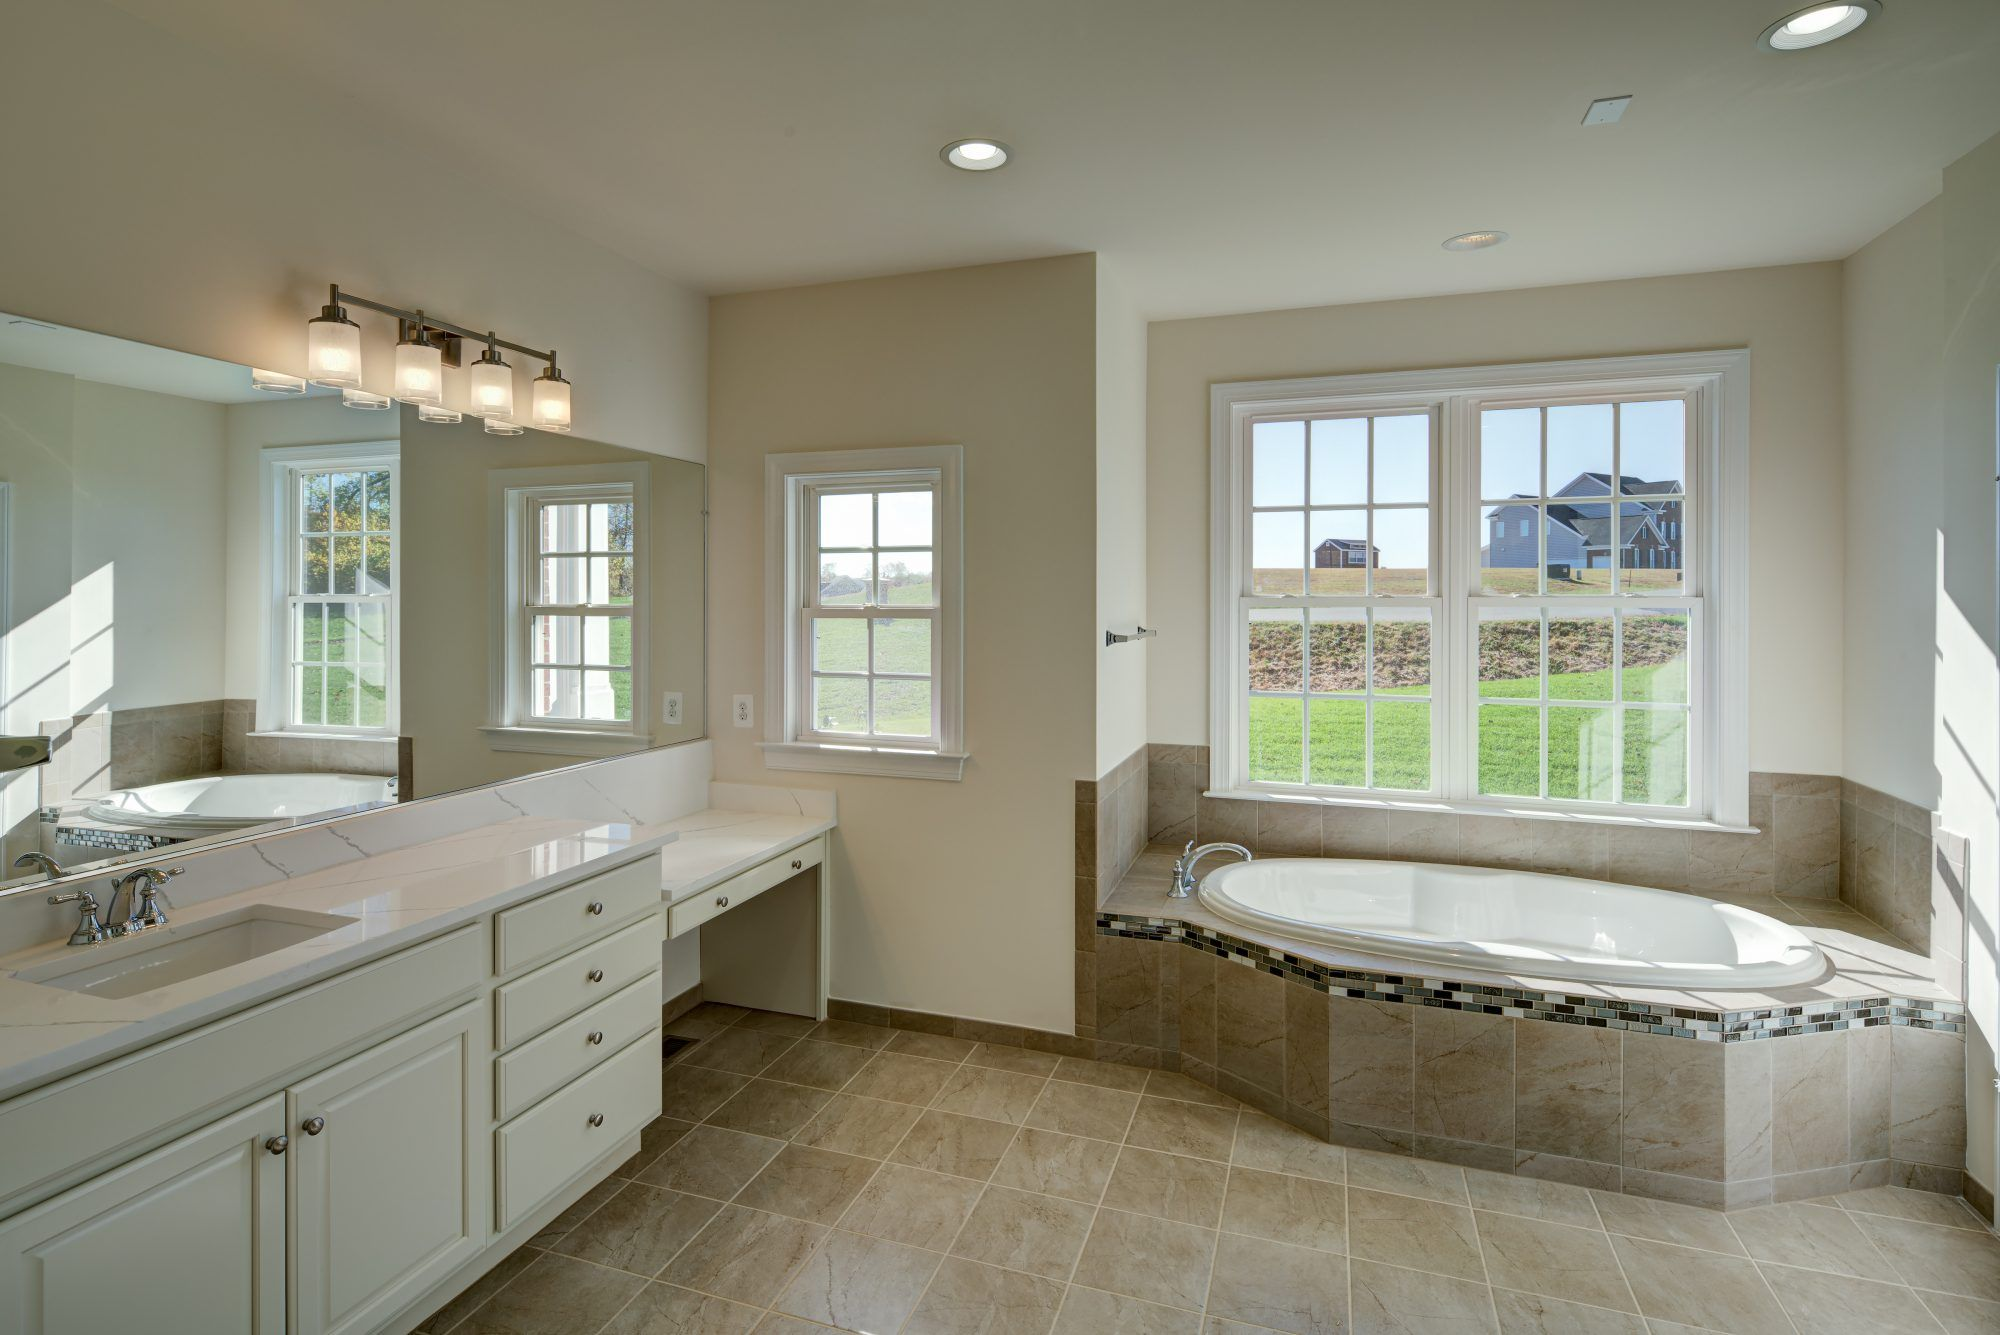 Bathroom featured in The Pinehurst By CarrHomes in Washington, VA